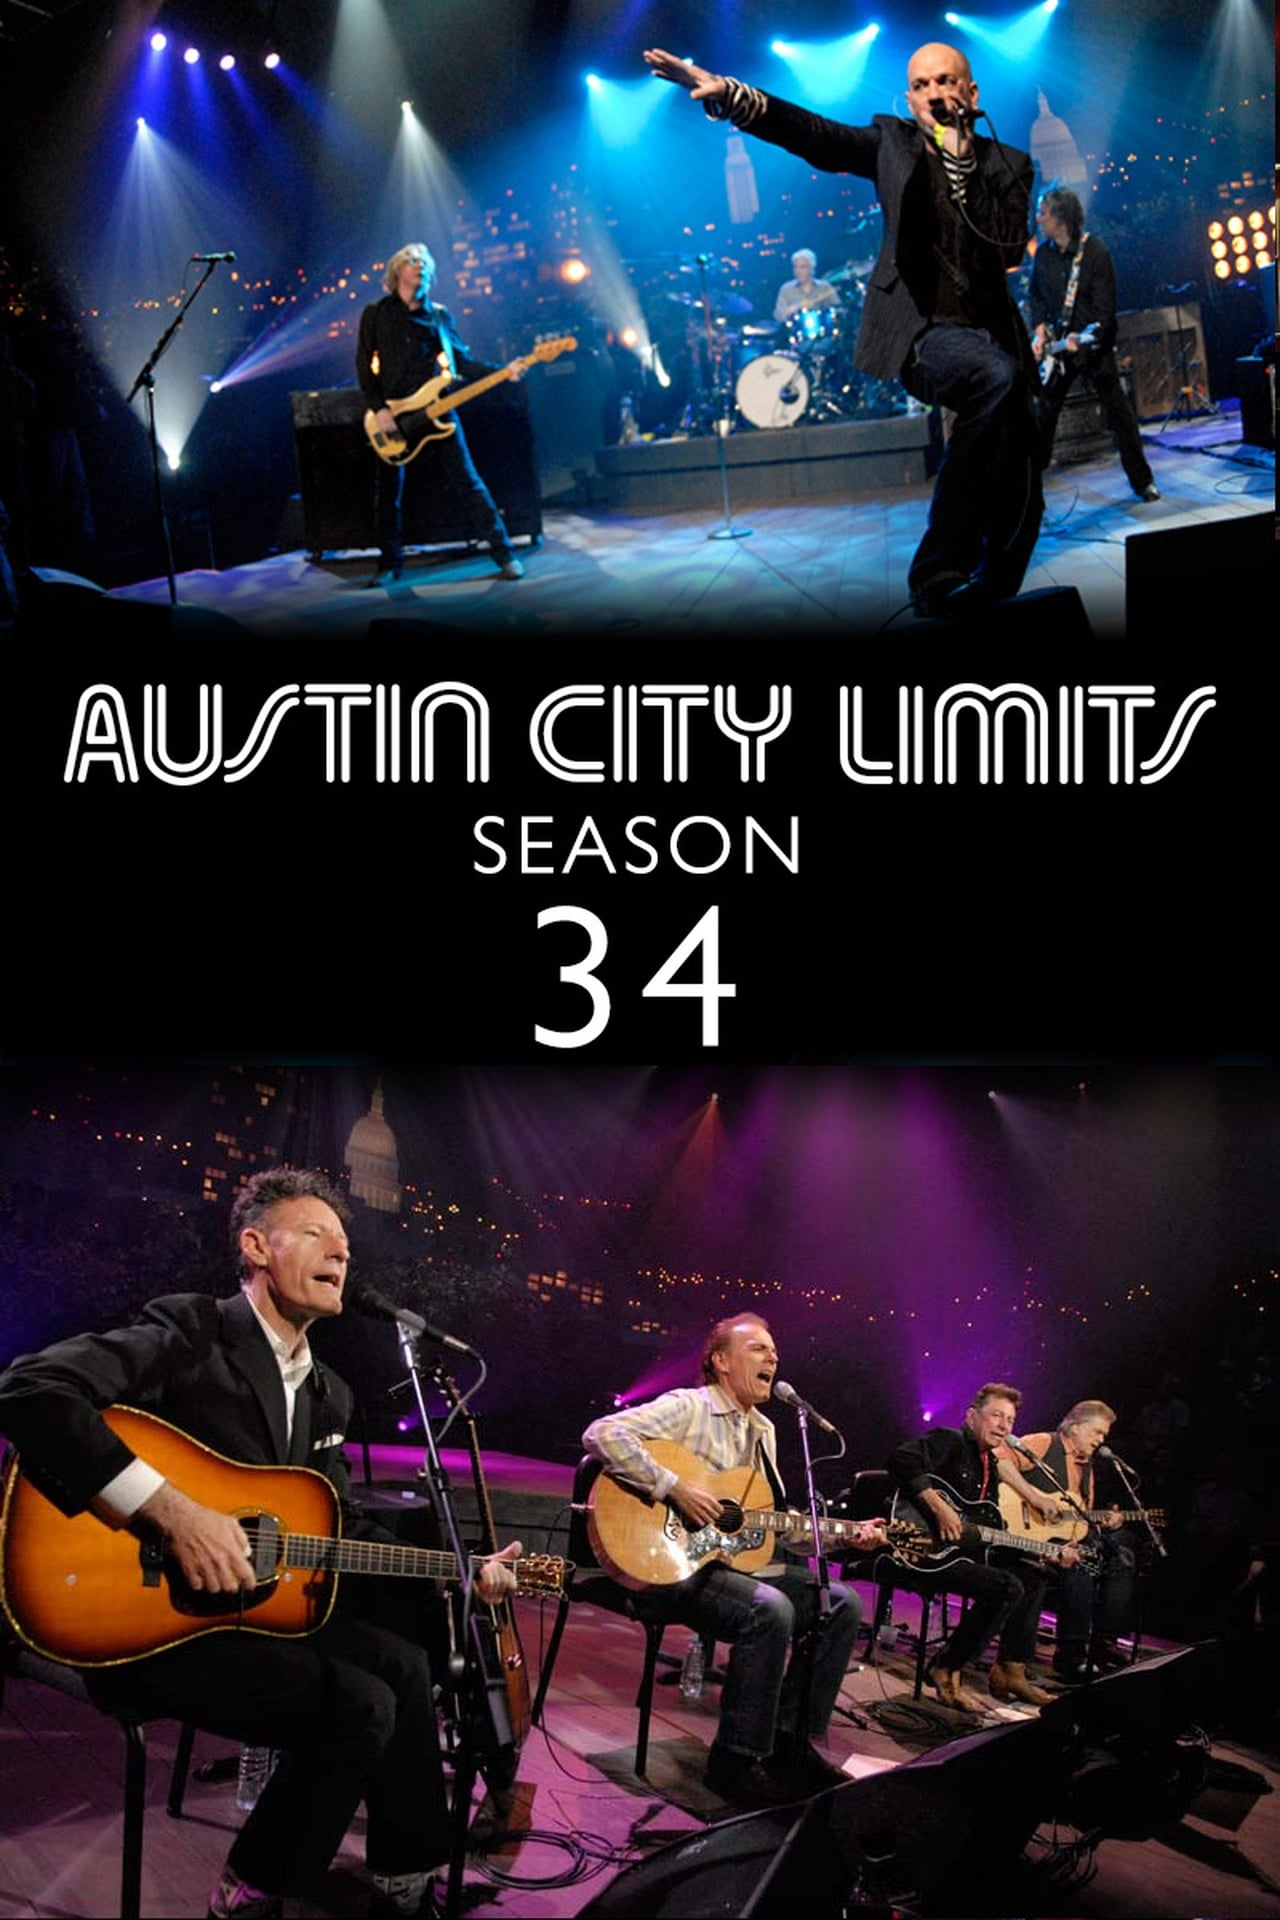 Putlocker Austin City Limits Season 34 (2008)